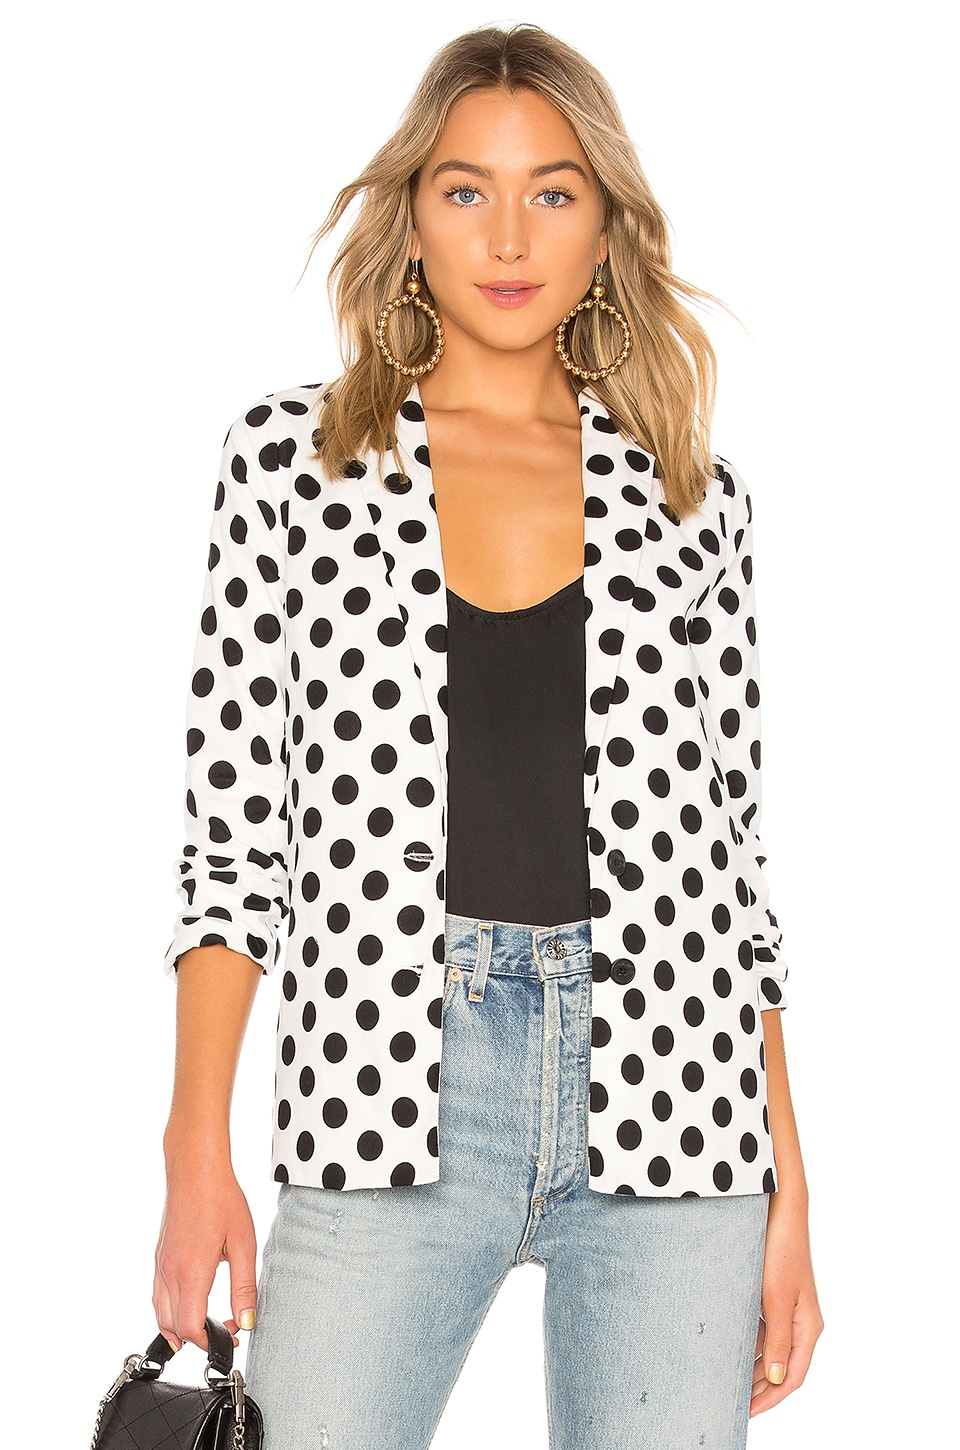 L'Academie The Sierra Blazer in Black White Dot